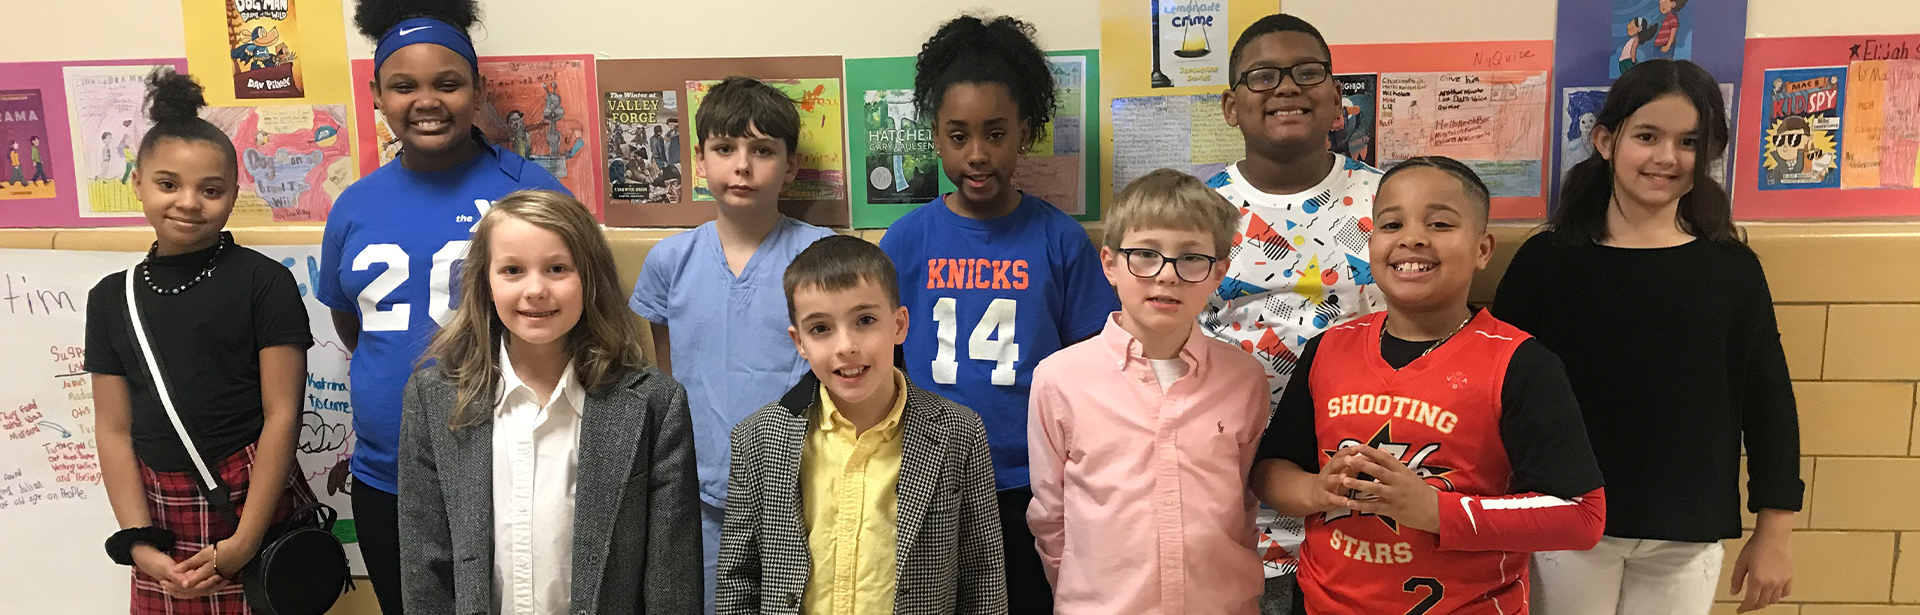 Students dress up for a themed day